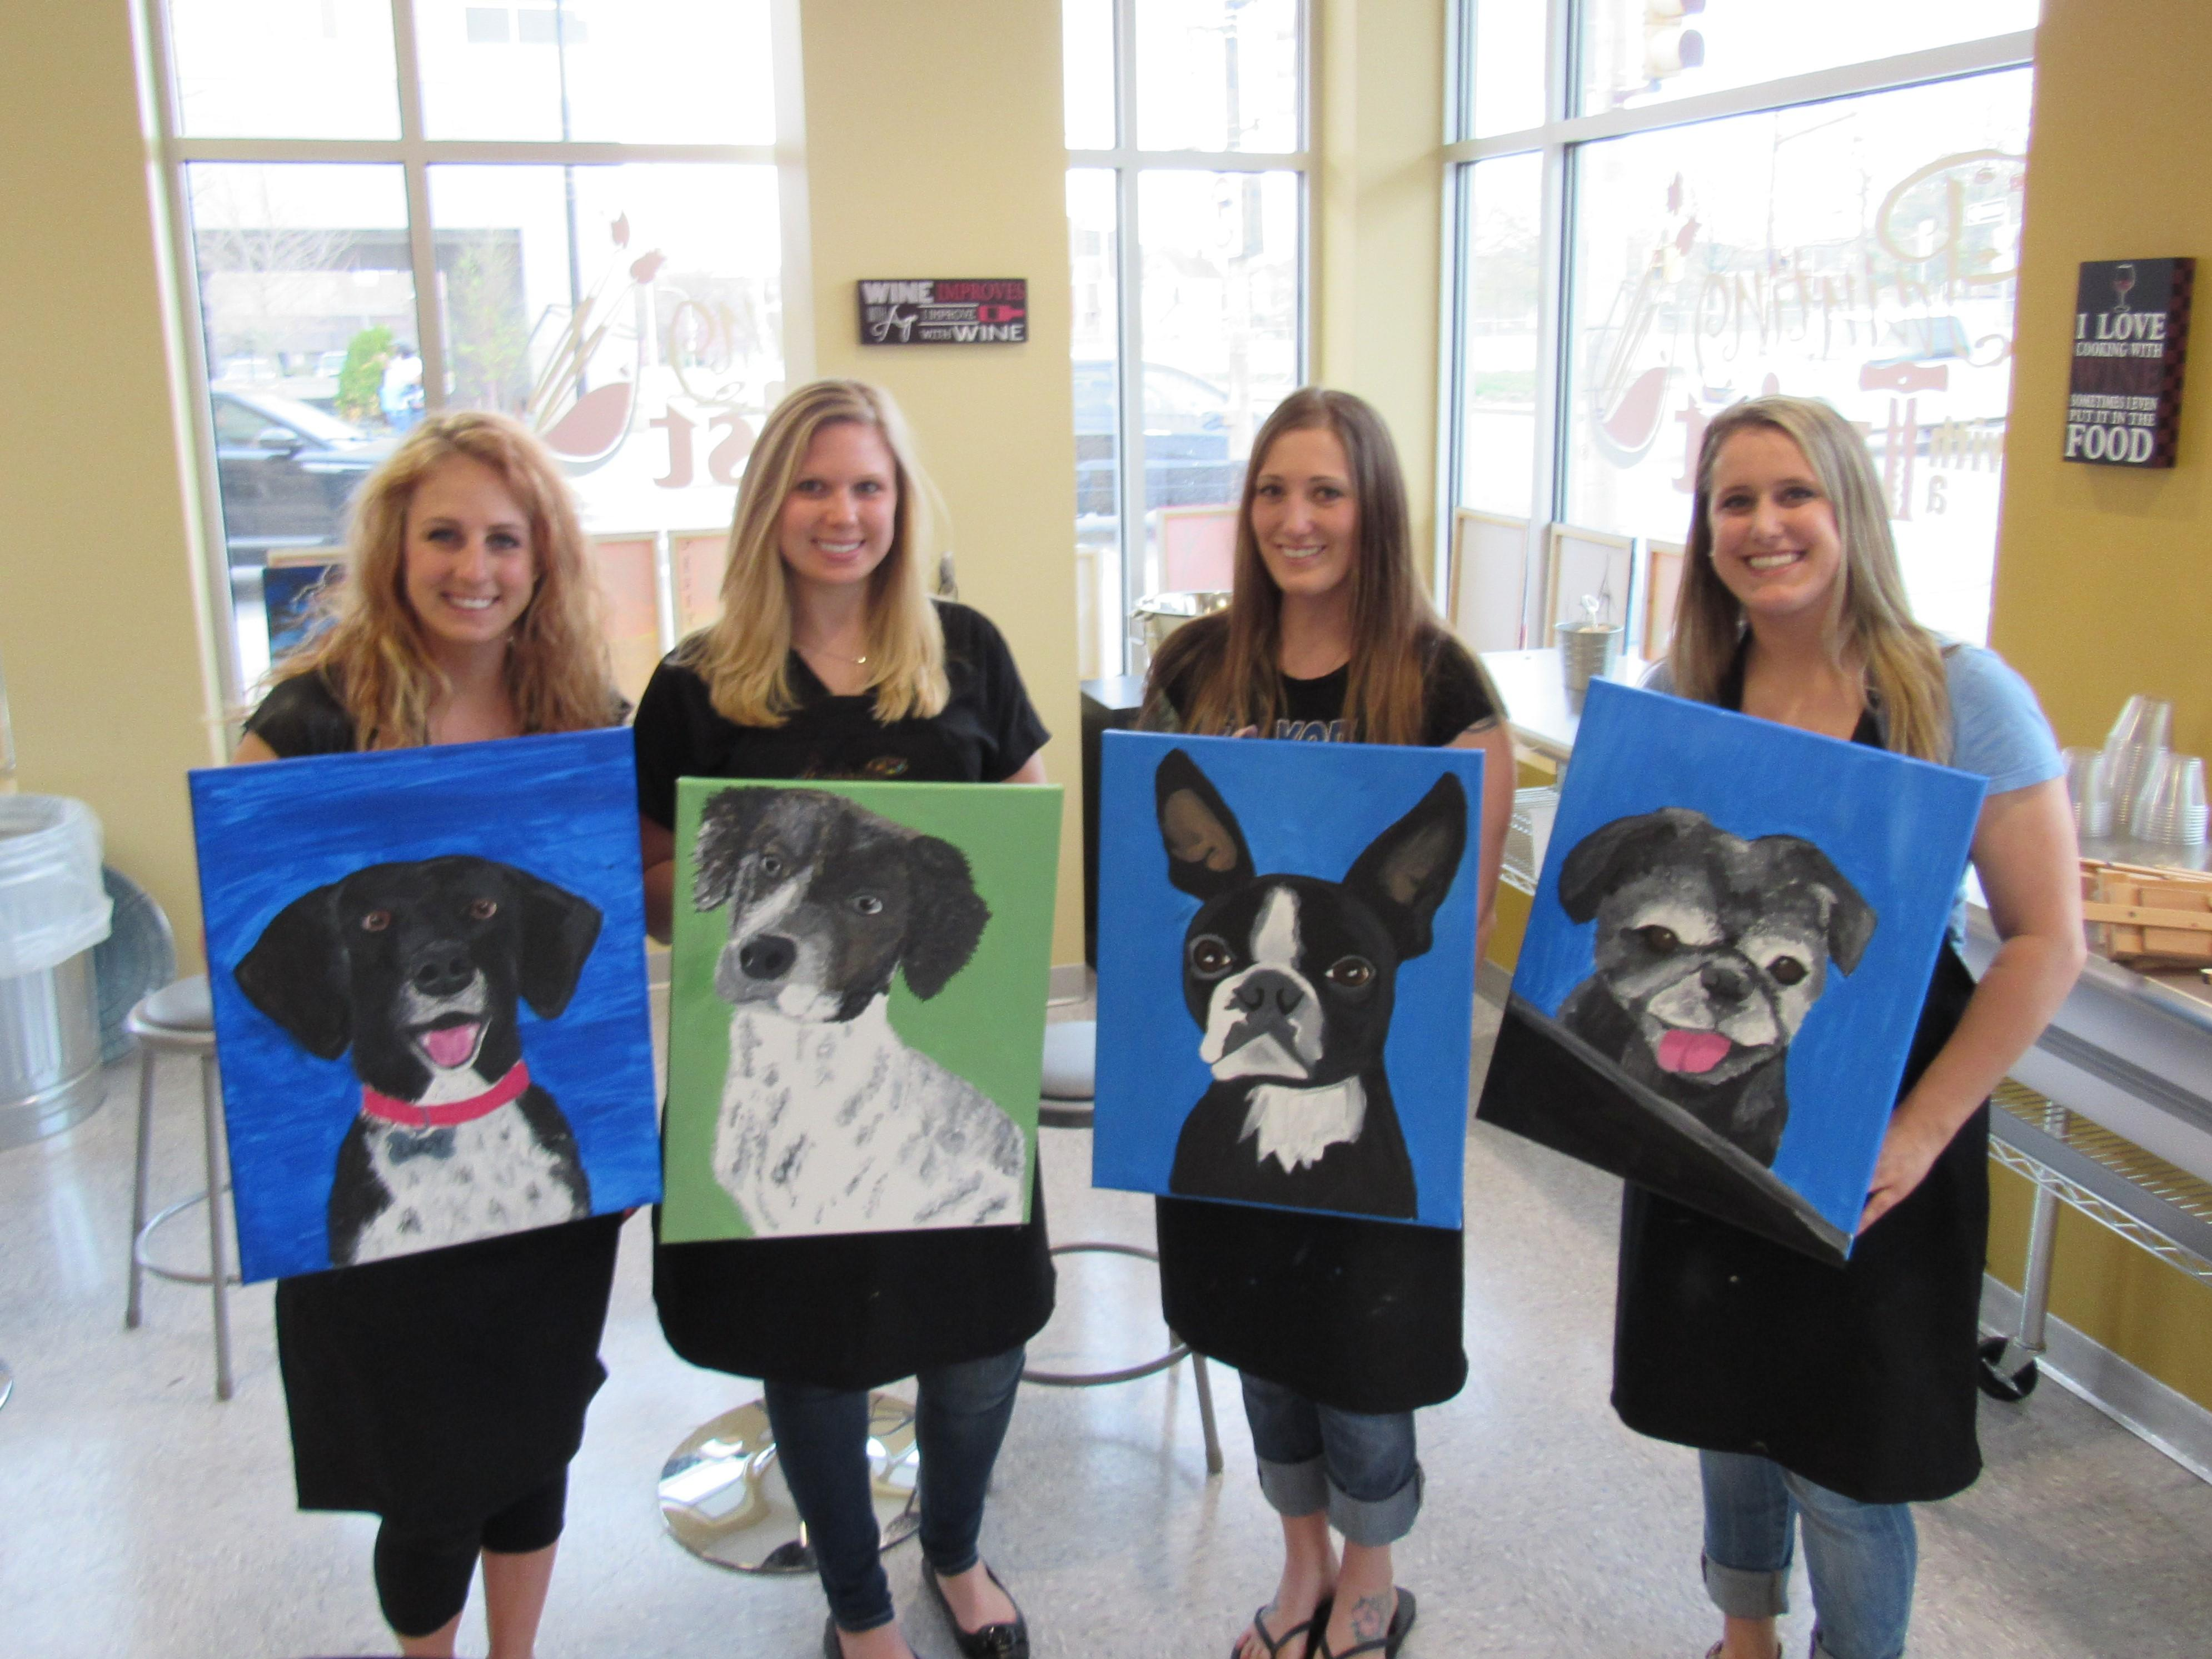 Painting with a twist in pittsburgh pa 15206 for Painting with a twist chicago